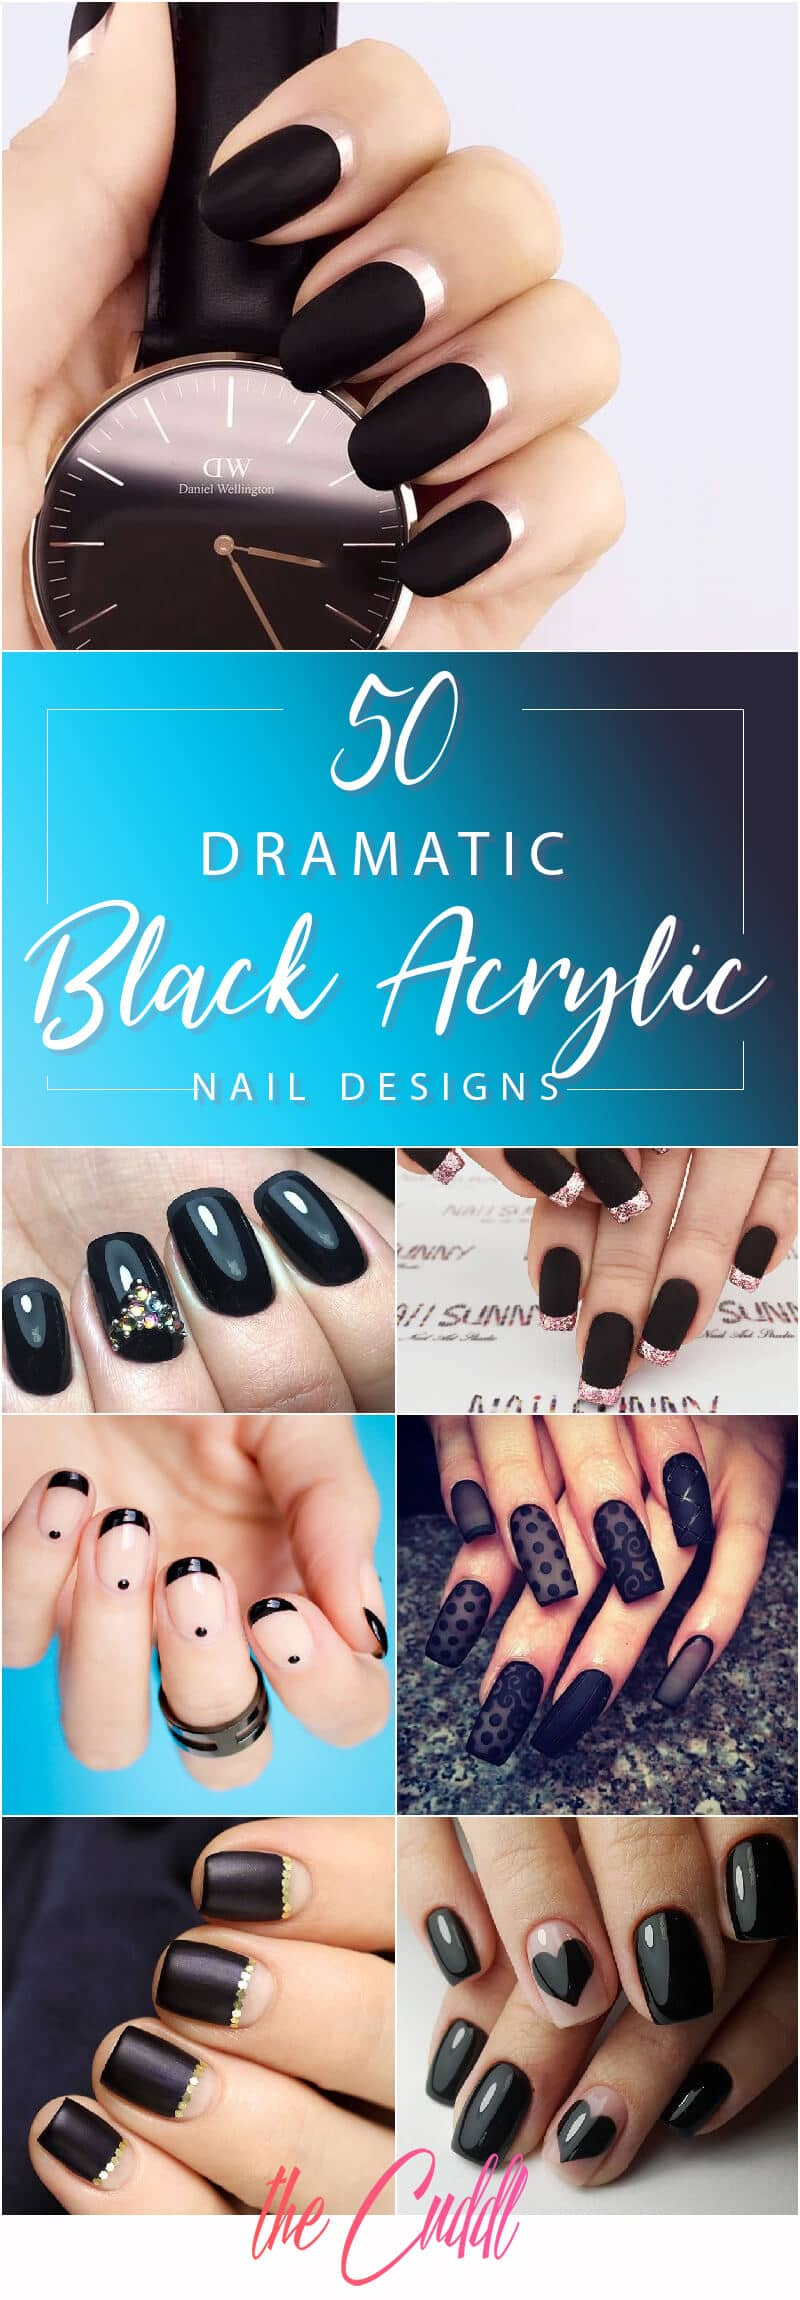 50 Dramatic Black Acrylic Nail Designs to Keep Your Style On